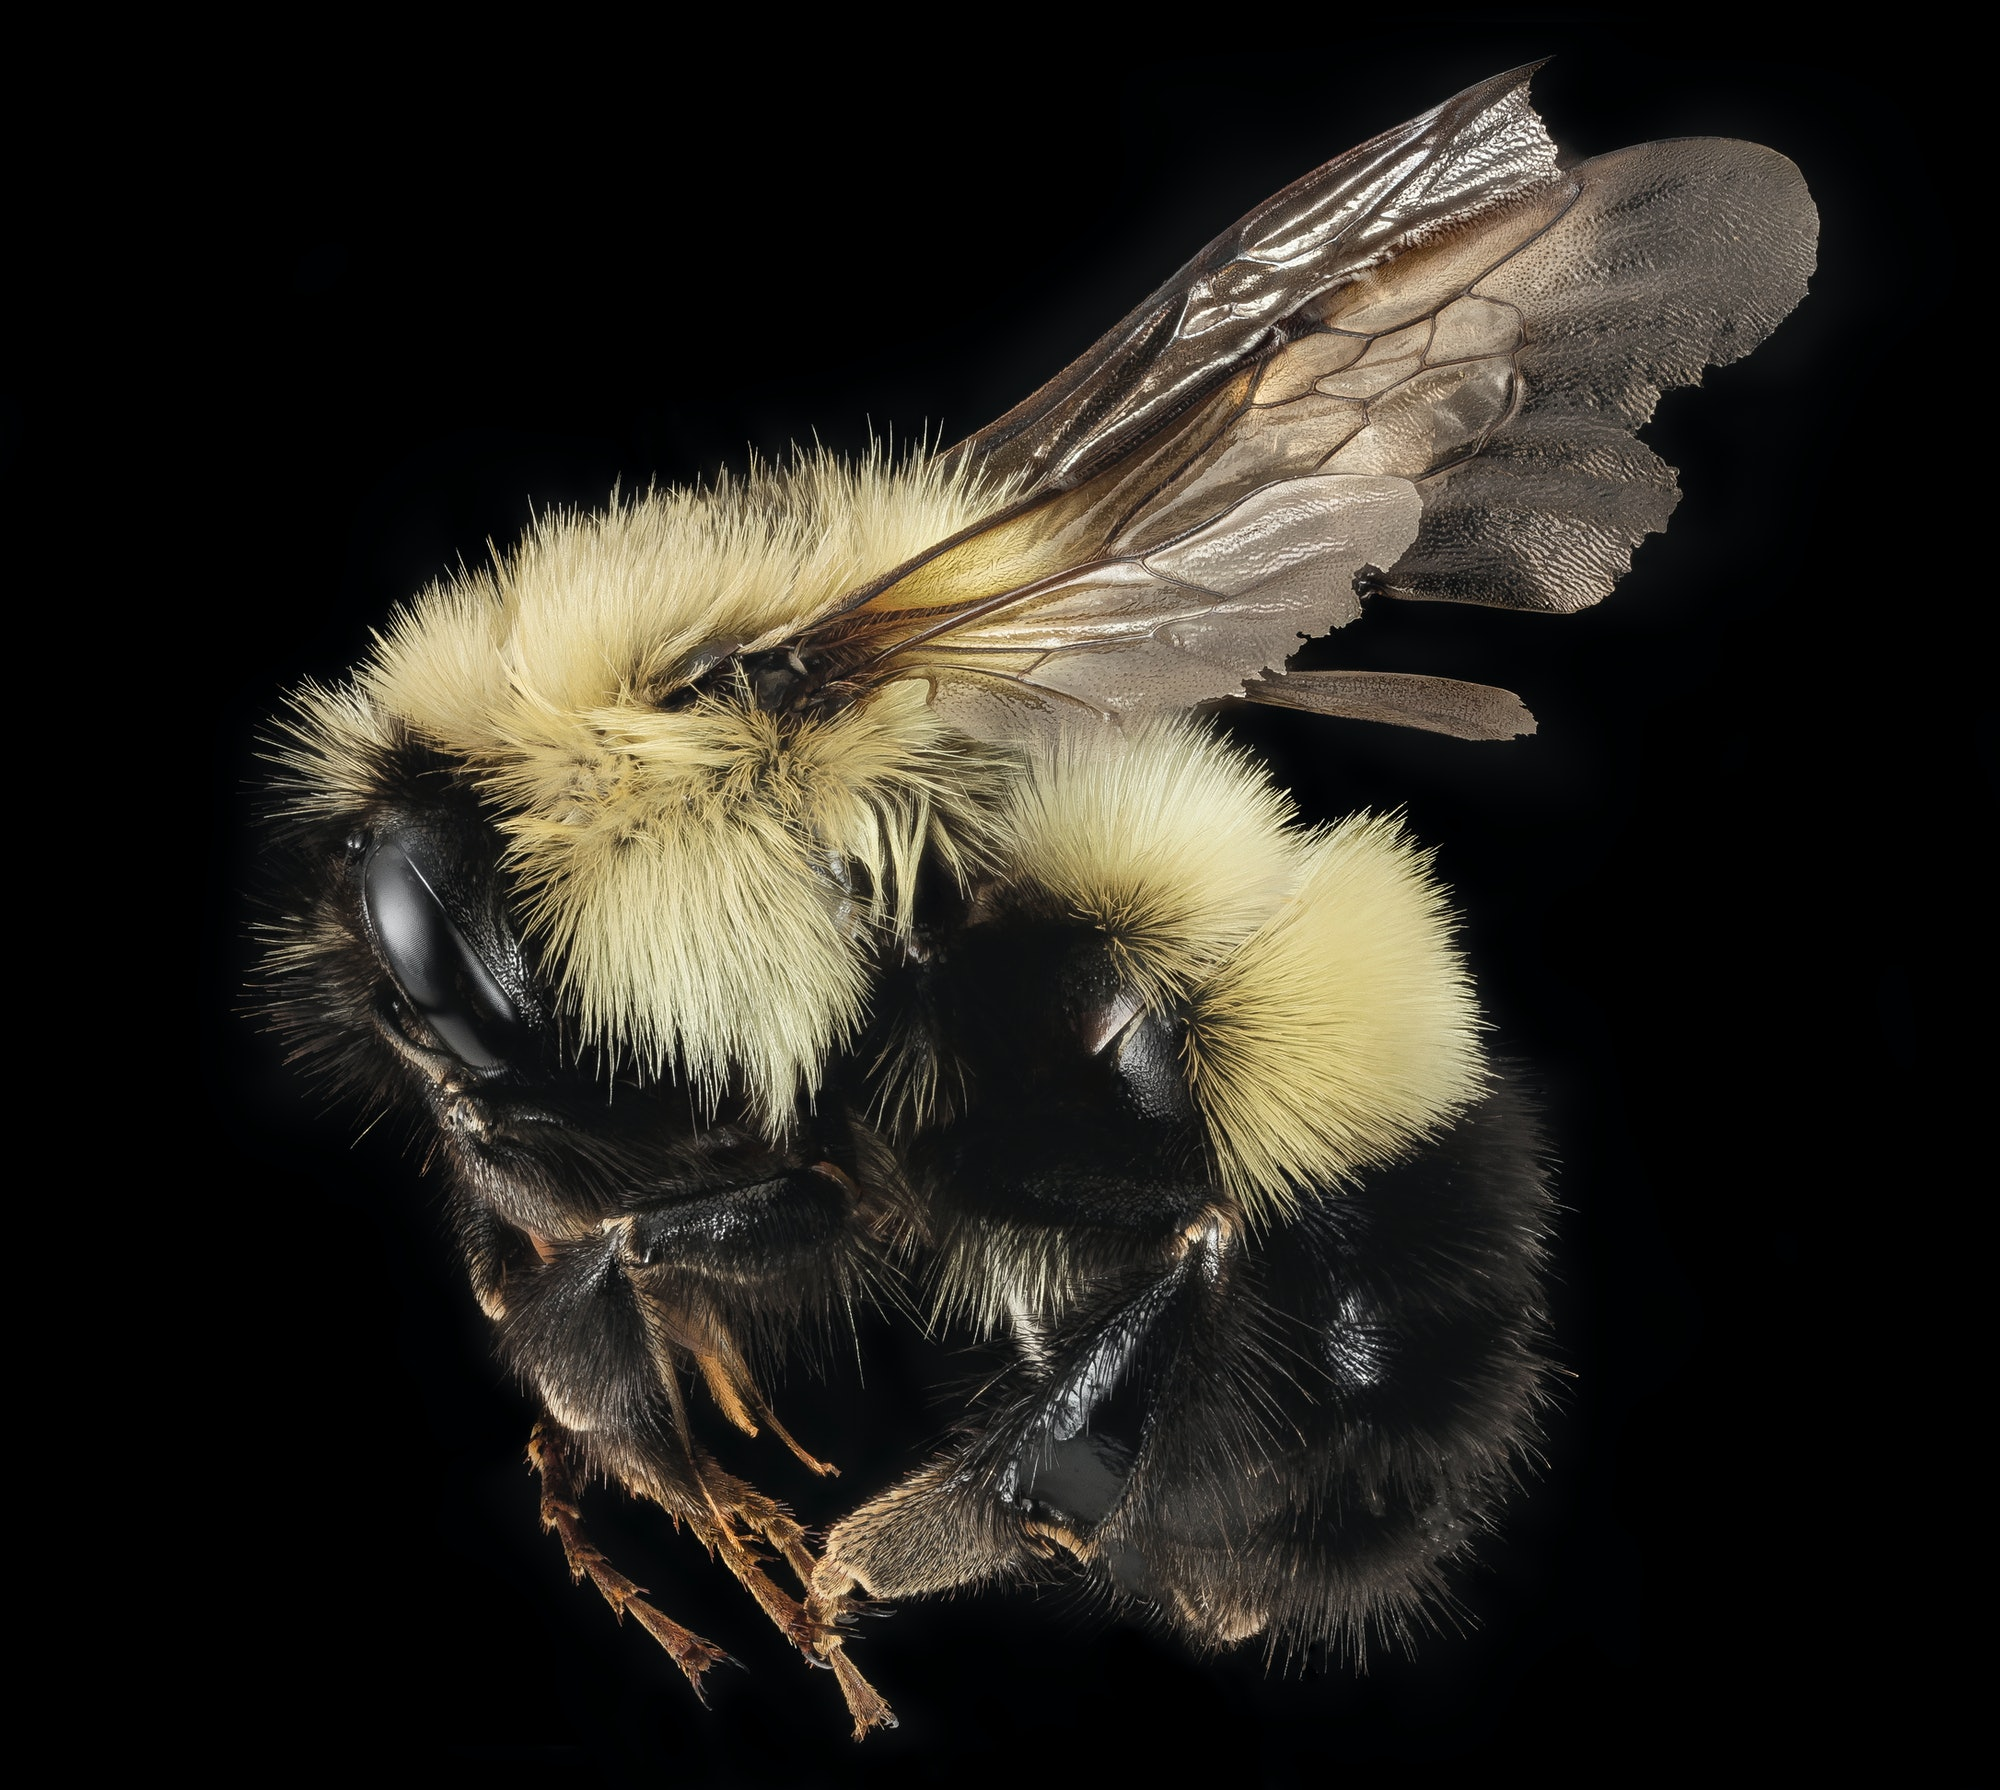 """A series of pictures of a queen and a male of the northernish bumble bee Bombus vagans. Still a reasonable common component of northern Appalachian systems, its been retreating from its lower elevation and southern edges over the last century. Whether the issues are climate change or the myriad of other factors that control what critter occurs in what place is hard to come to firm conclusions. In any case these came from a collecting expedition and Bioblitz in the Adirondack Mountains of New York. Note the long face and the first 2 abdomominal segments with yellow hairs. Plush! Photographs by Brooke Alexander.~~~~~~~~~~{{{{{{0}}}}}}~~~~~~~~~~All photographs are public domain, feel free to download and use as you wish.Photography Information:Canon Mark II 5D, Zerene Stacker, Stackshot Sled, 65mm Canon MP-E 1-5X macro lens, Twin Macro Flash in Styrofoam Cooler, F5.0, ISO 100, Shutter Speed 200Beauty is truth, truth beauty - that is all Ye know on earth and all ye need to know """" Ode on a Grecian Urn"""" John KeatsYou can also follow us on Instagram - account = USGSBIMLWant some Useful Links to the Techniques We Use? Well now here you go Citizen:Art Photo Book: Bees: An Up-Close Look at Pollinators Around the Worldwww.amazon.com/Bees-Up-Close-Pollinators-Around-World/dp/...Free Field Guide to Bee Genera of Marylandhttp://bio2.elmira.edu/fieldbio/beesofmarylandbookversion1.pdf Basic USGSBIML set up:www.youtube.com/watch?v=S-_yvIsucOYUSGSBIML Photoshopping Technique: Note that we now have added using the burn tool at 50% opacity set to shadows to clean up the halos that bleed into the black background from """"hot"""" color sections of the picture.www.youtube.com/watch?v=Bdmx_8zqvN4Bees of Maryland Organized by Taxa with information on each Genuswww.flickr.com/photos/usgsbiml/collectionsPDF of Basic USGSBIML Photography Set Up: ftp://ftpext.usgs.gov/pub/er/md/laurel/Droege/How%20to%20Take%20MacroPhotographs%20of%20Insects%20BIML%20Lab2.pdf Google Hangout Demonstration of Technique"""